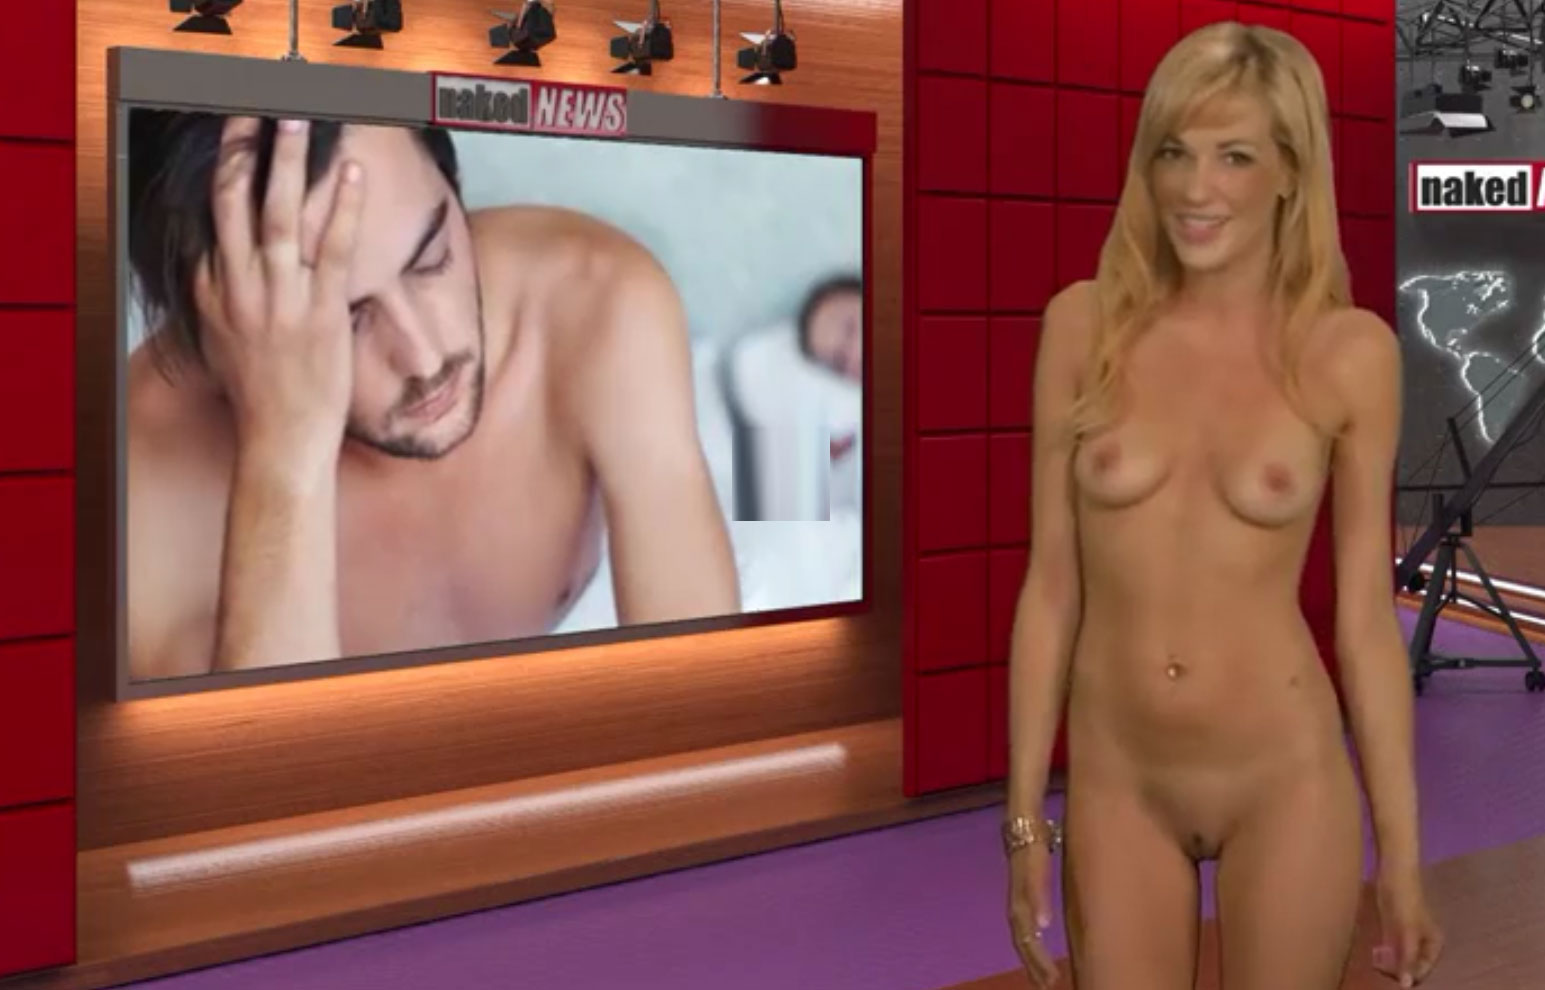 Katie - Naked blonde anchor on naked news